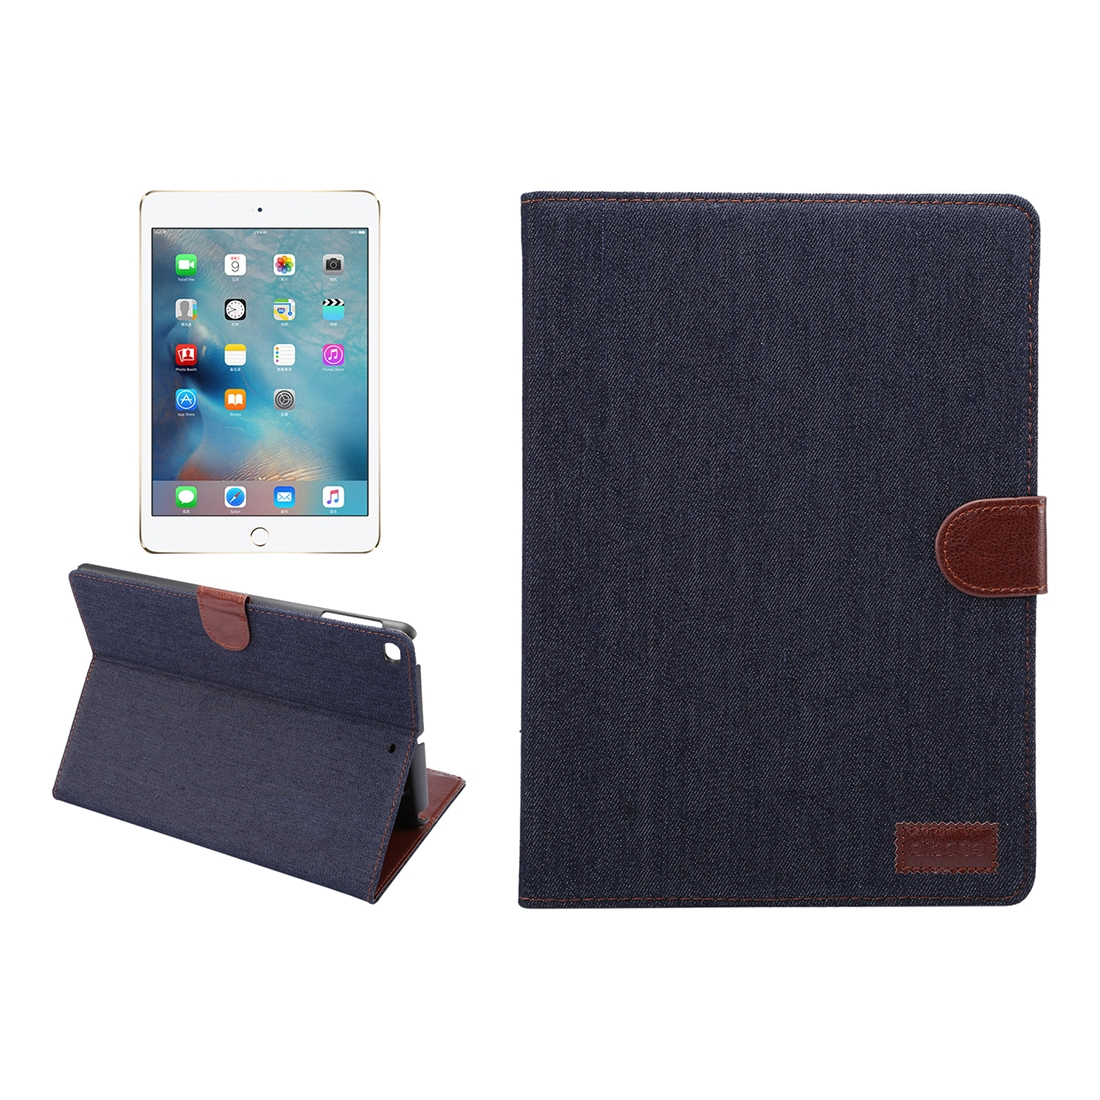 Designer Leather Case For New iPad 9.7 Inch iPad air (iPad5) & iPad air2 (iPad6), Auto Sleep (Black)